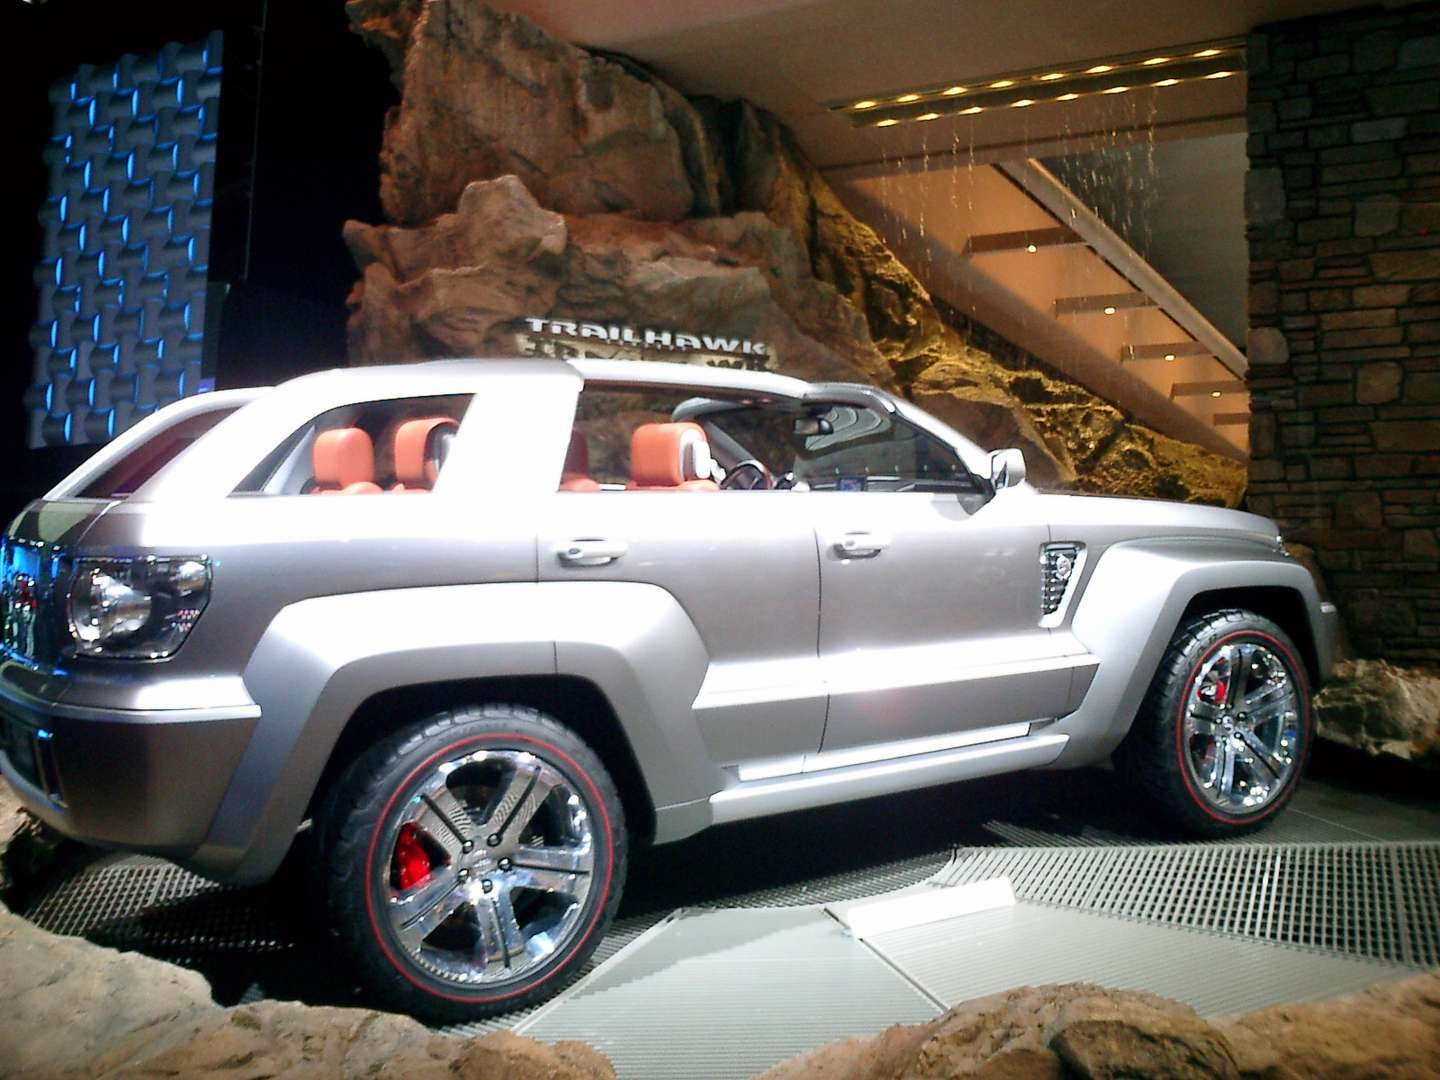 Jeep_Trailhawk